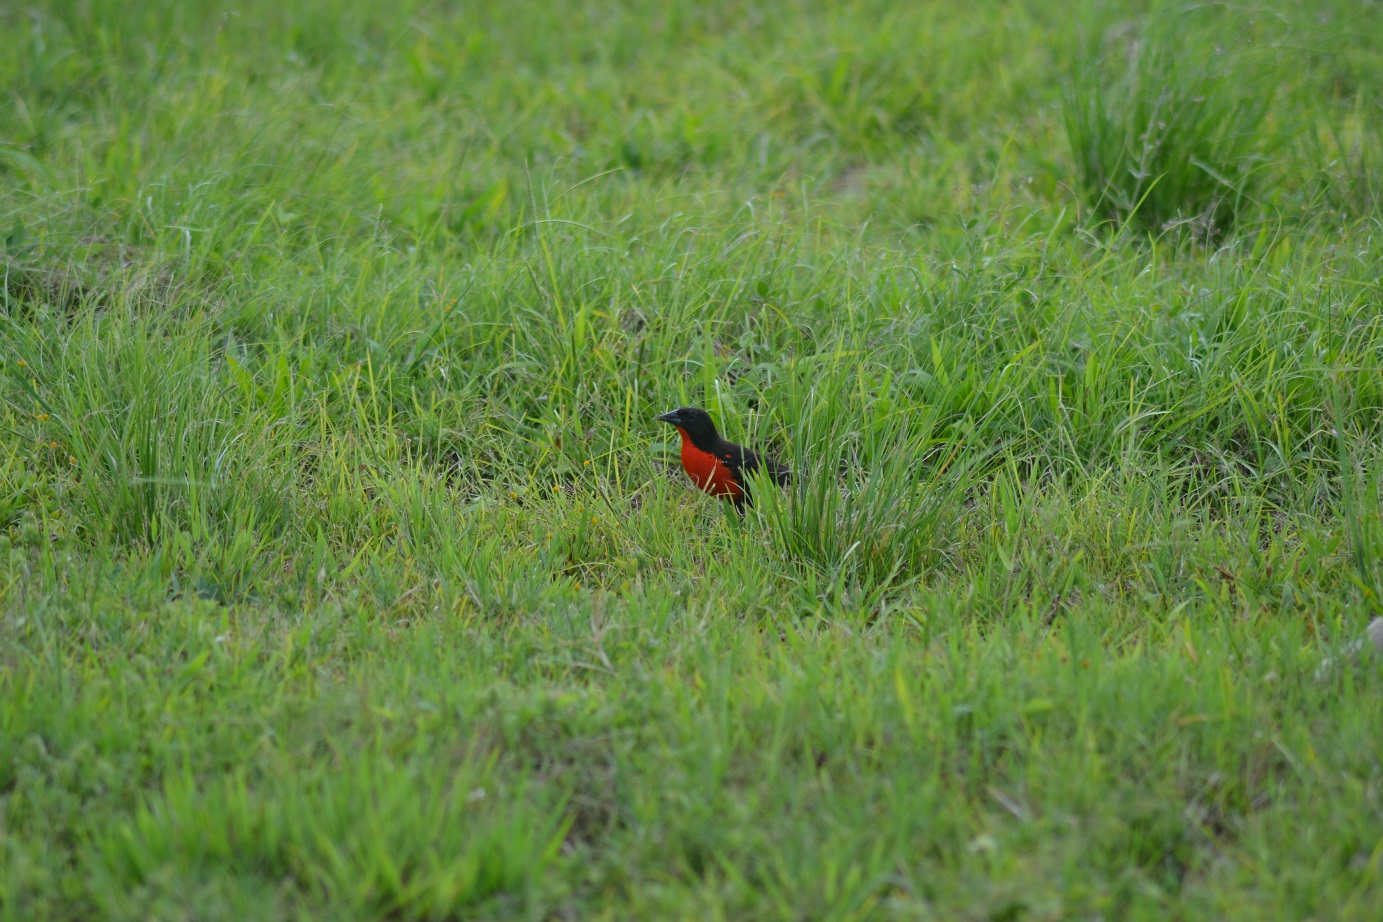 Brilliant Red-breasted Blackbird spotted on our way to Caroni (photo: Ryan Chenery)